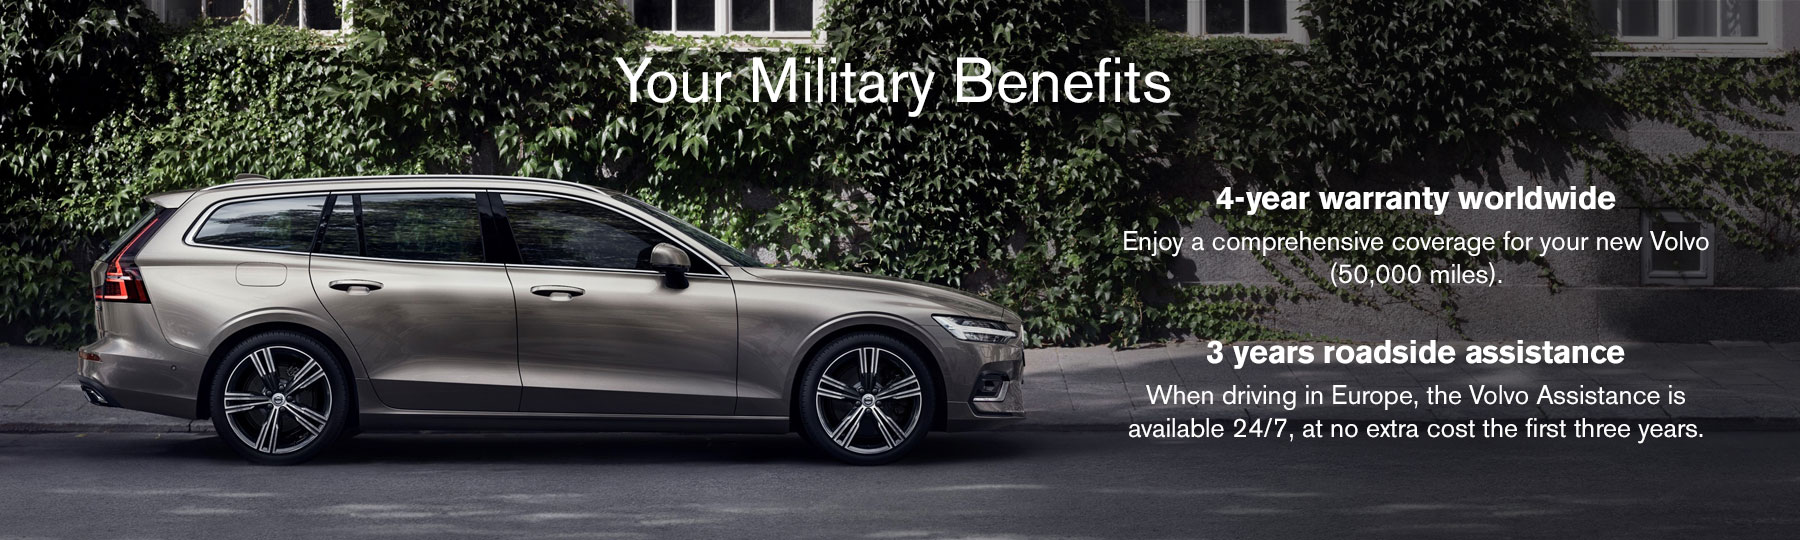 Volvo Military benefits